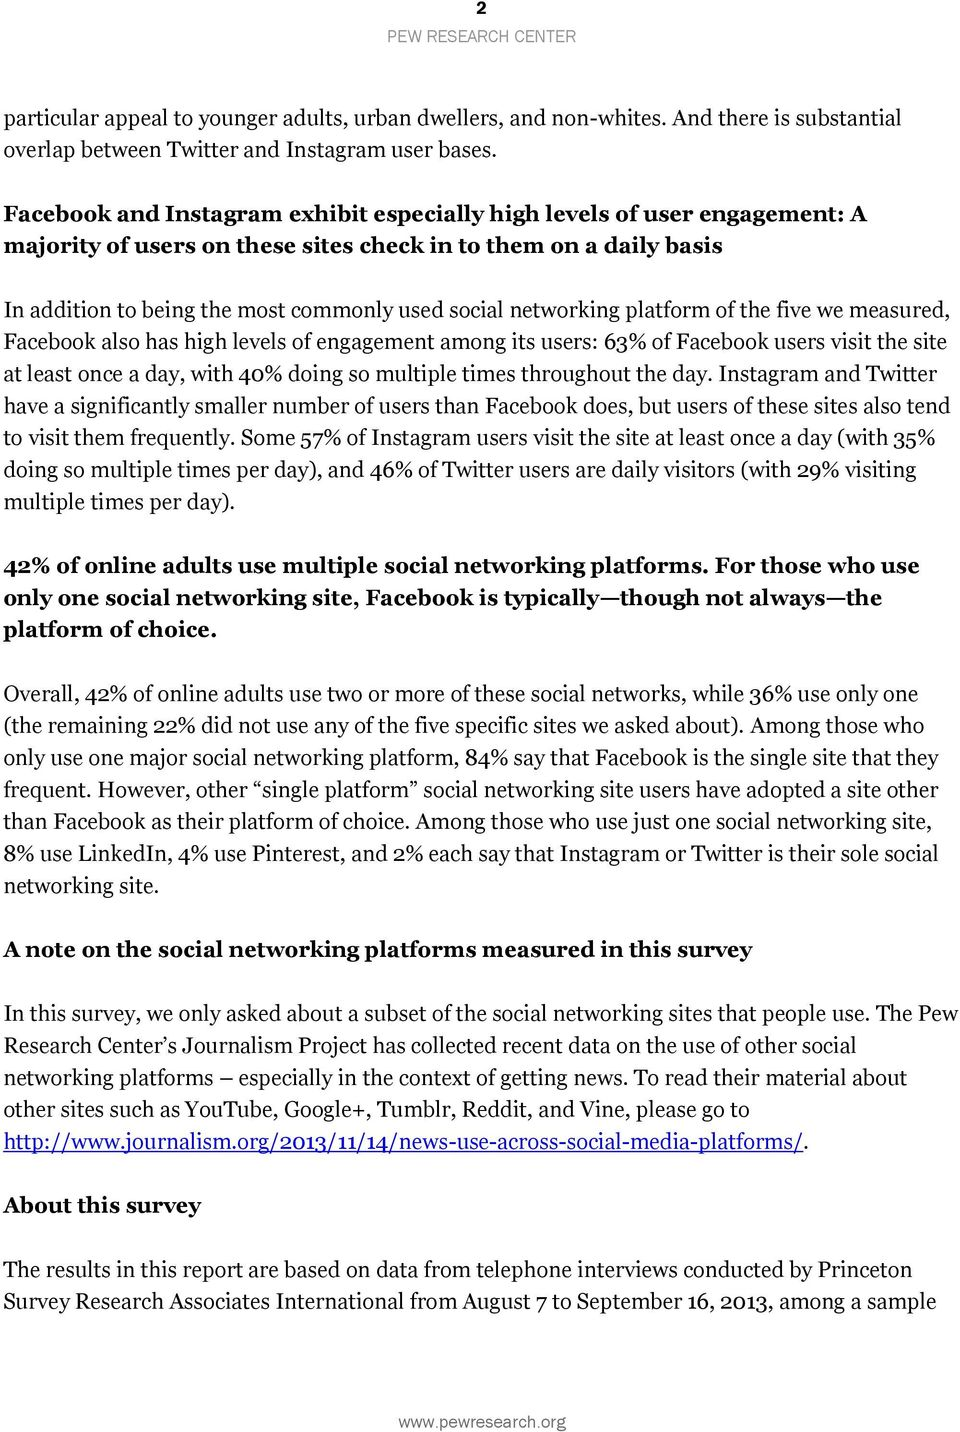 networking platform of the five we measured, Facebook also has high levels of engagement among its users: 63% of Facebook users visit the site at least once a day, with 40% doing so multiple times